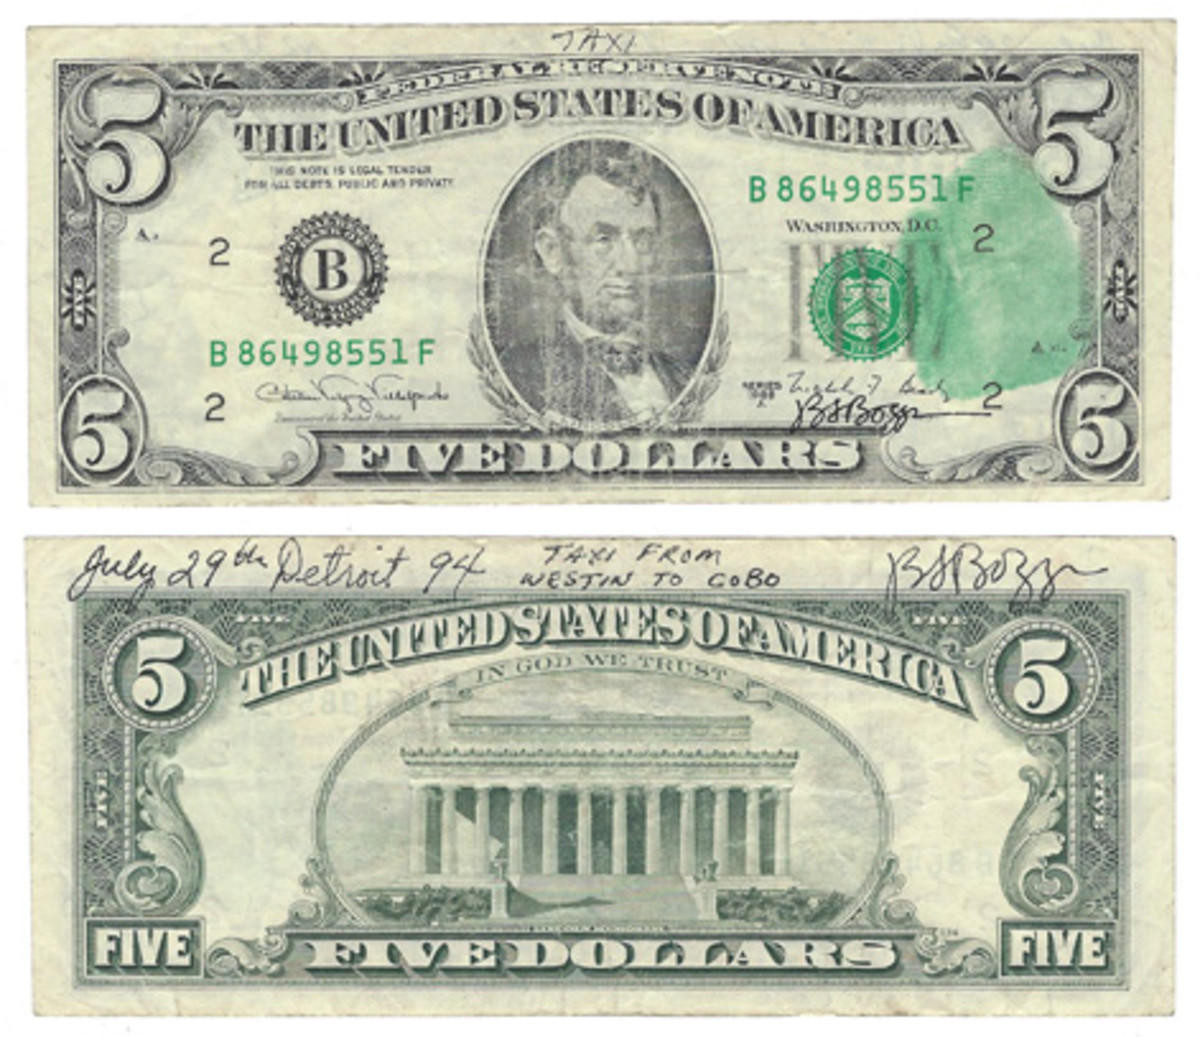 This is the $5 FRN tendered to Boggs as change for his $10 Boggs Bill. Both sides of the note have annotations by Boggs. Thumbprint is on the face, and the back has specifics about the whole episode.